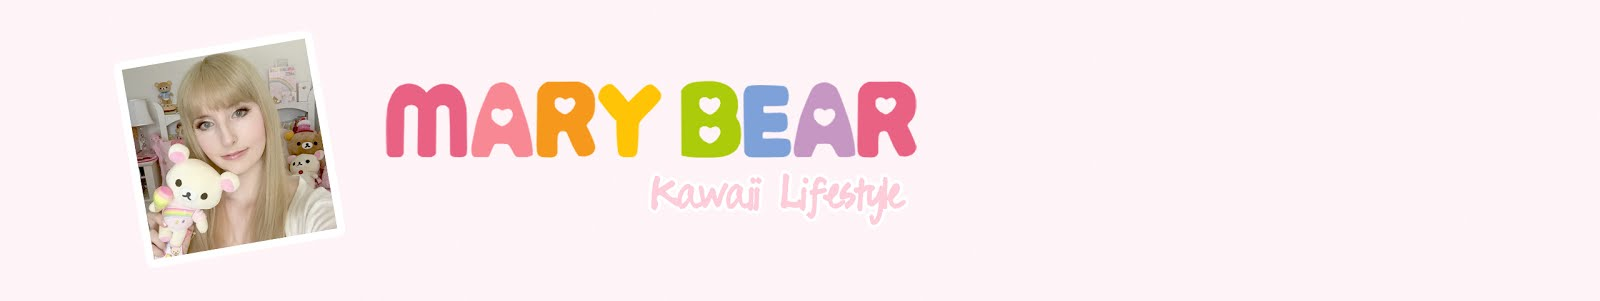 Mary Bear - Kawaii Lifestyle